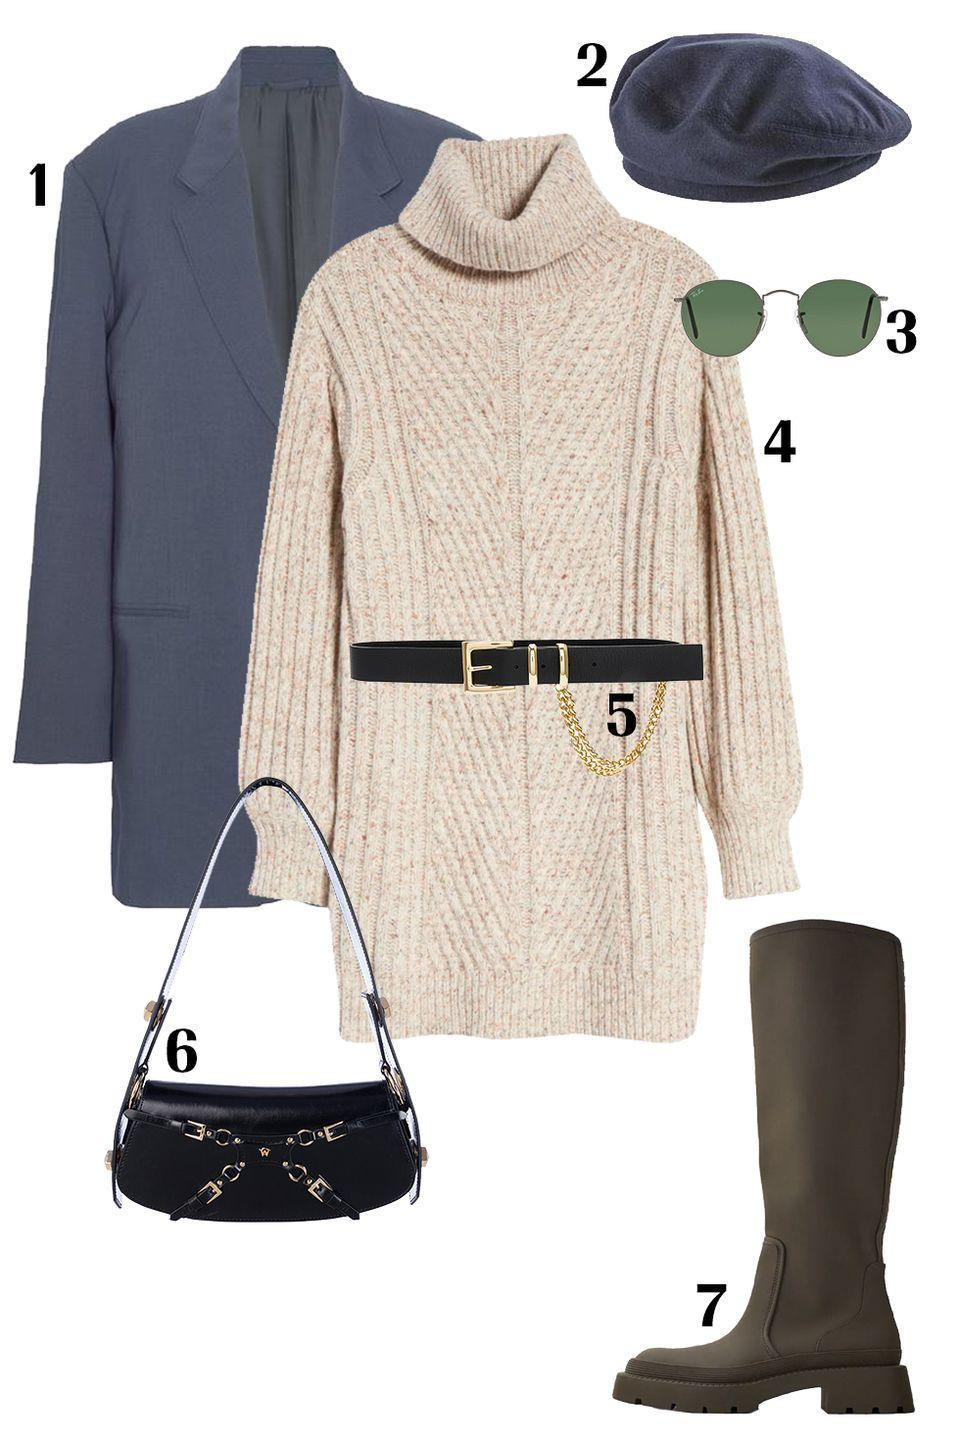 """<p>An easy way to be both trendy and comfy is to lean into the """"borrowed from the boys"""" trend. Layer a thick cable-knit sweater dress under an oversized straight blazer. Now, for accessories, add a <a href=""""https://www.marieclaire.com/fashion/a32971079/best-designer-belts-for-women/"""" rel=""""nofollow noopener"""" target=""""_blank"""" data-ylk=""""slk:belt"""" class=""""link rapid-noclick-resp"""">belt</a> to cinch the waist and coordinate a shoulder bag with gold accents to match. Finish off the look with a suede beret to mirror your blazer and you're ready for the city streets. </p><p>Shop the pieces:<em> <strong>1.</strong> </em><em><a href=""""https://thefrankieshop.com/products/graphite-notch-lapel-blazer?_pos=2&_sid=31012b66a&_ss=r"""" rel=""""nofollow noopener"""" target=""""_blank"""" data-ylk=""""slk:The Frankie Shop Blazer"""" class=""""link rapid-noclick-resp"""">The Frankie Shop Blazer</a></em><em>,</em> $179; <strong>2.</strong> <em><a href=""""https://helenkaminski.com/products/briar-deep-ink"""" rel=""""nofollow noopener"""" target=""""_blank"""" data-ylk=""""slk:Helen Kaminski Beret"""" class=""""link rapid-noclick-resp"""">Helen Kaminski Beret</a></em>, $130; <strong>3.</strong> <em><a href=""""https://www.nordstrom.com/s/ray-ban-icons-53mm-retro-sunglasses/5826146"""" rel=""""nofollow noopener"""" target=""""_blank"""" data-ylk=""""slk:Ray-Ban Sunglasses"""" class=""""link rapid-noclick-resp"""">Ray-Ban Sunglasses</a></em>, $154; <strong>4.</strong> <em><a href=""""https://www.nordstrom.com/s/all-in-favor-turtleneck-long-sleeve-sweater-dress/5770464?color=cream%20multi"""" rel=""""nofollow noopener"""" target=""""_blank"""" data-ylk=""""slk:All In Favor Sweater Dress"""" class=""""link rapid-noclick-resp"""">All In Favor Sweater Dress</a></em>, $69; <strong>5.</strong> <em><a href=""""https://www.revolve.com/blow-the-belt-phoenix-belt-in-black-gold/dp/BLOW-WA40/?d=Womens&product=BLOW-WA40&bneEl=true&"""" rel=""""nofollow noopener"""" target=""""_blank"""" data-ylk=""""slk:B-Low the Belt"""" class=""""link rapid-noclick-resp"""">B-Low the Belt </a></em>, $138; <strong>6.</strong> <em><a href=""""https://www.mancofficial.co"""